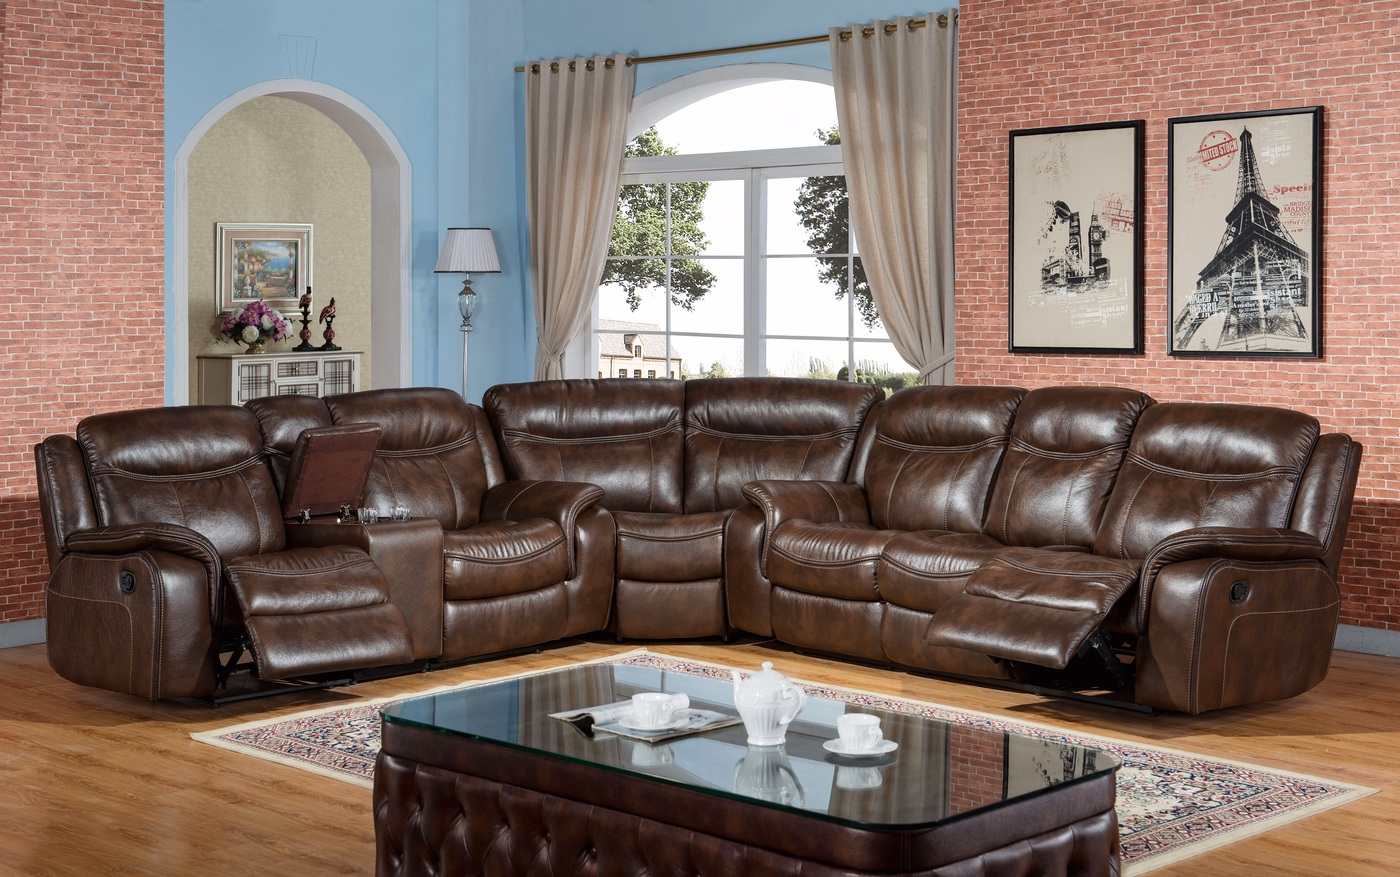 braylon classic brown reclining sectional in premium leather air fabric. Black Bedroom Furniture Sets. Home Design Ideas